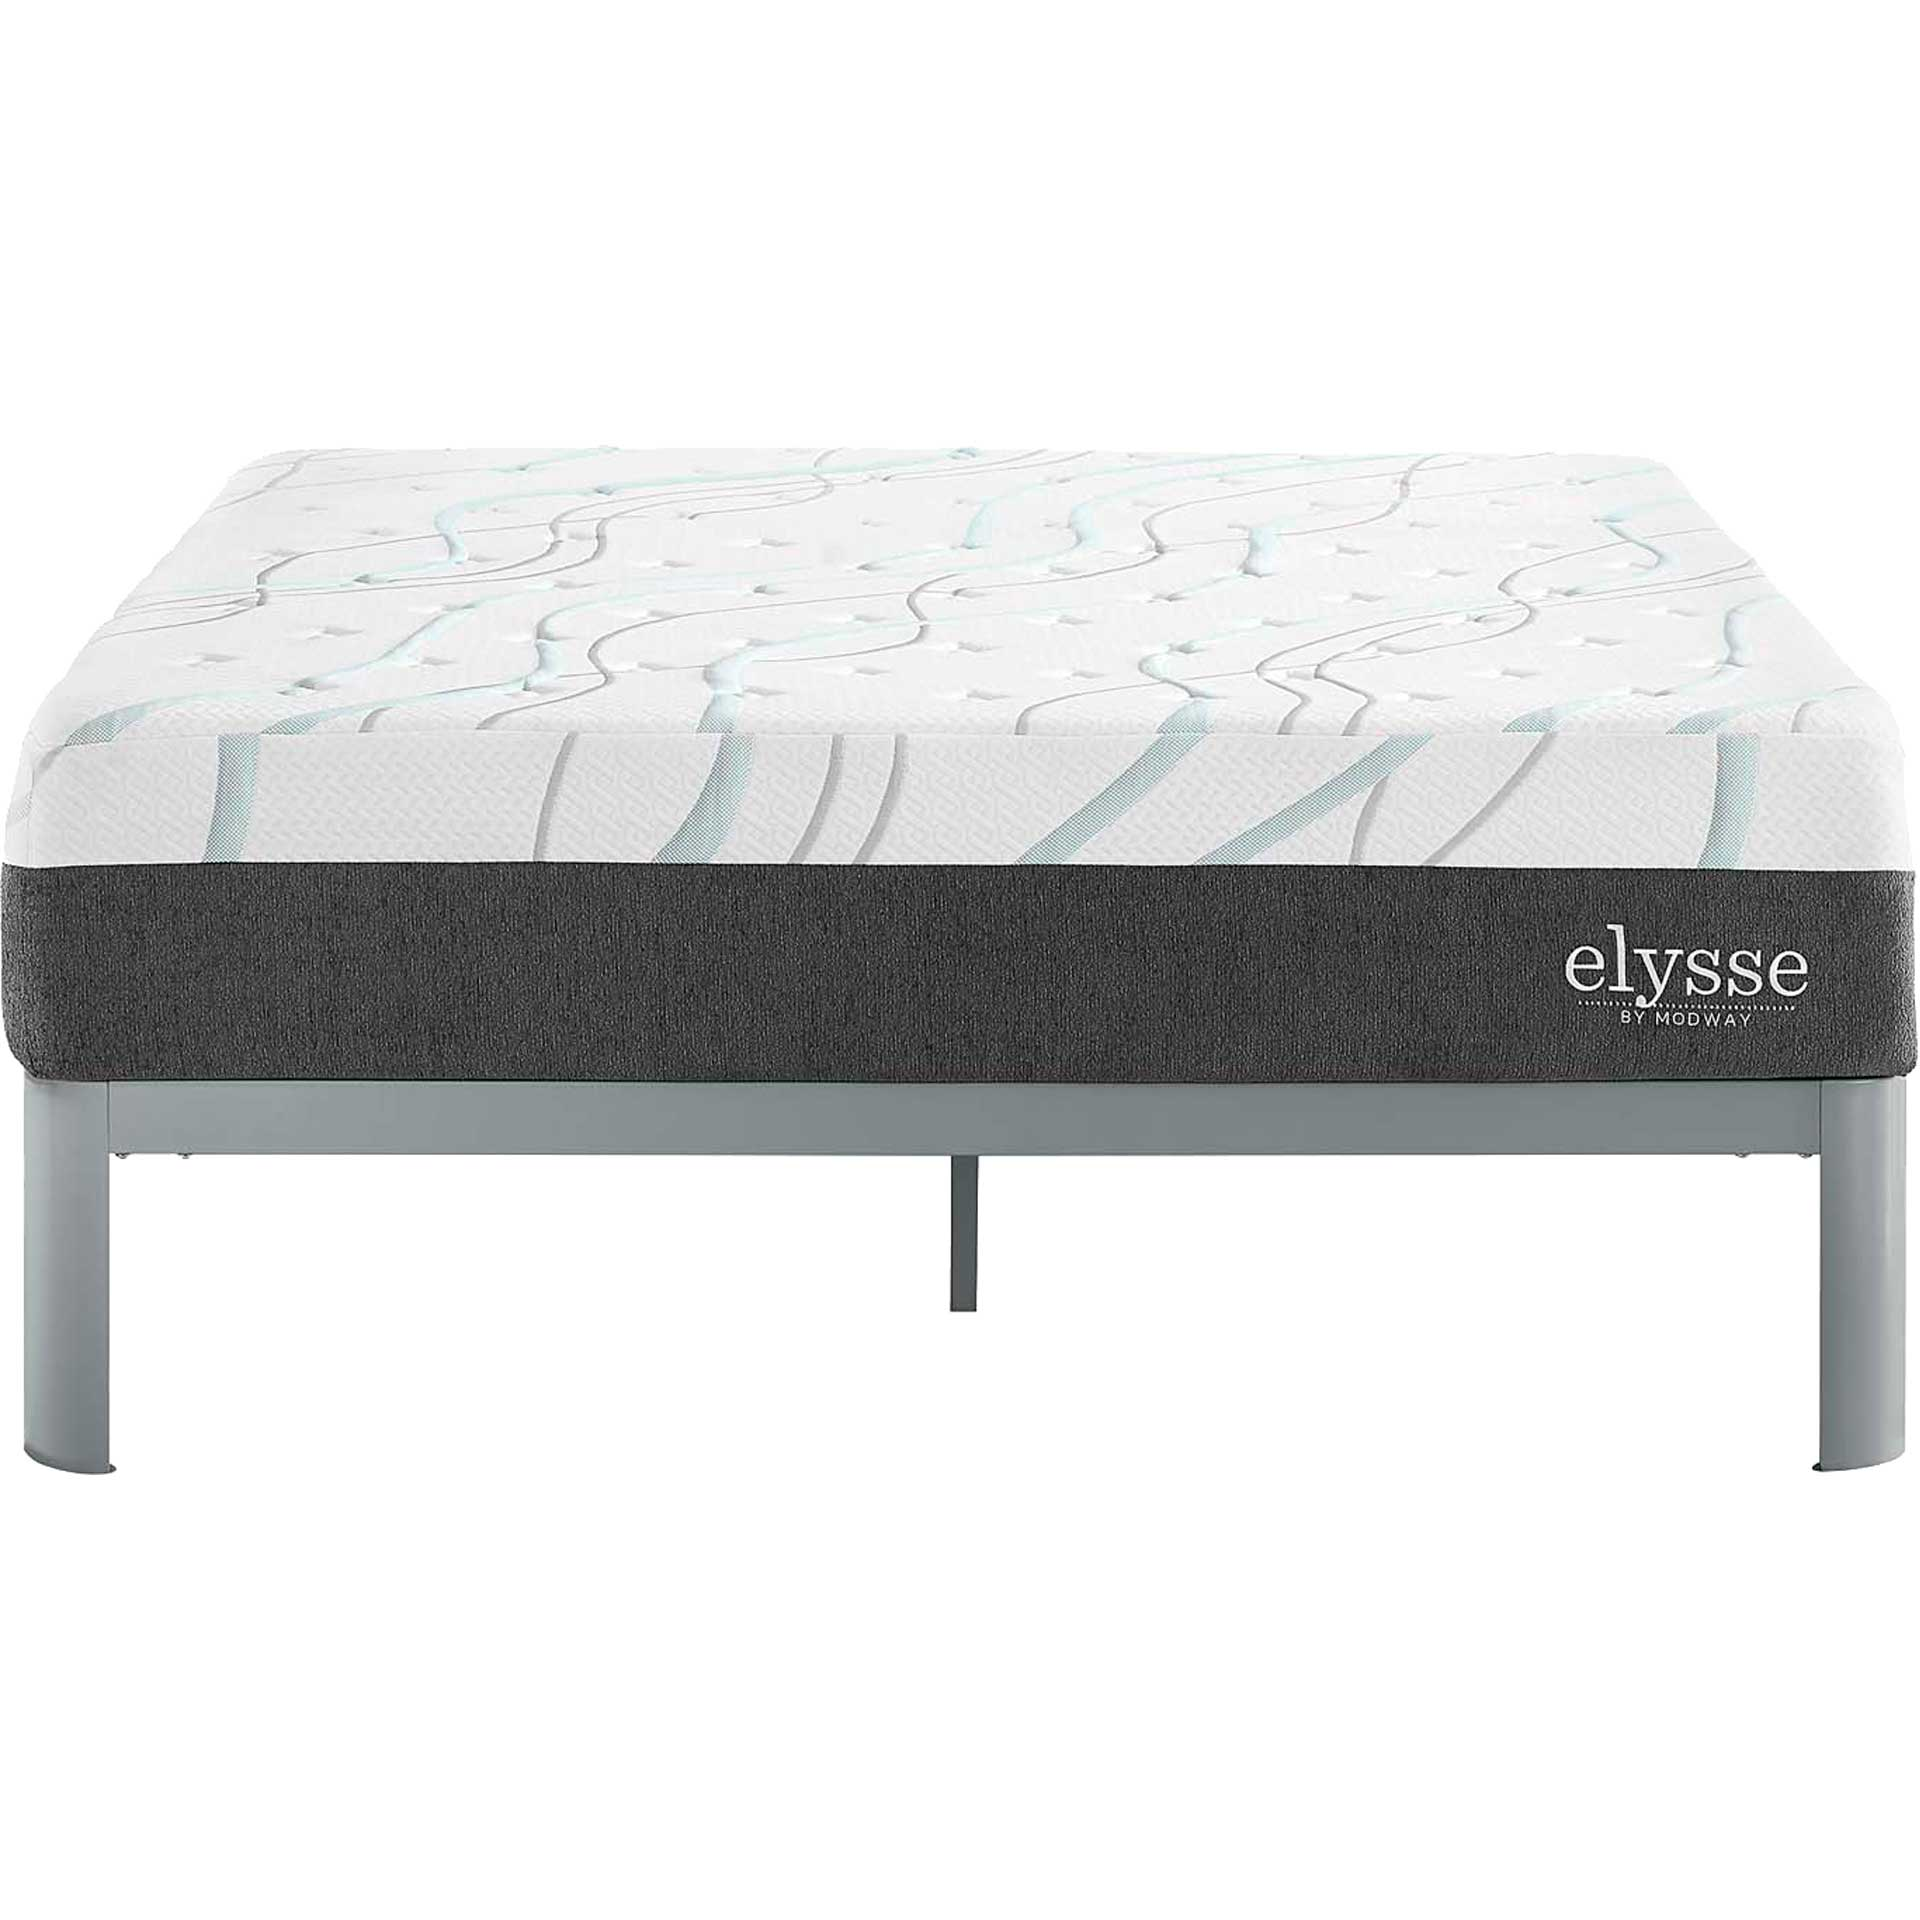 Elysse Gel Infused Hybrid Mattress White